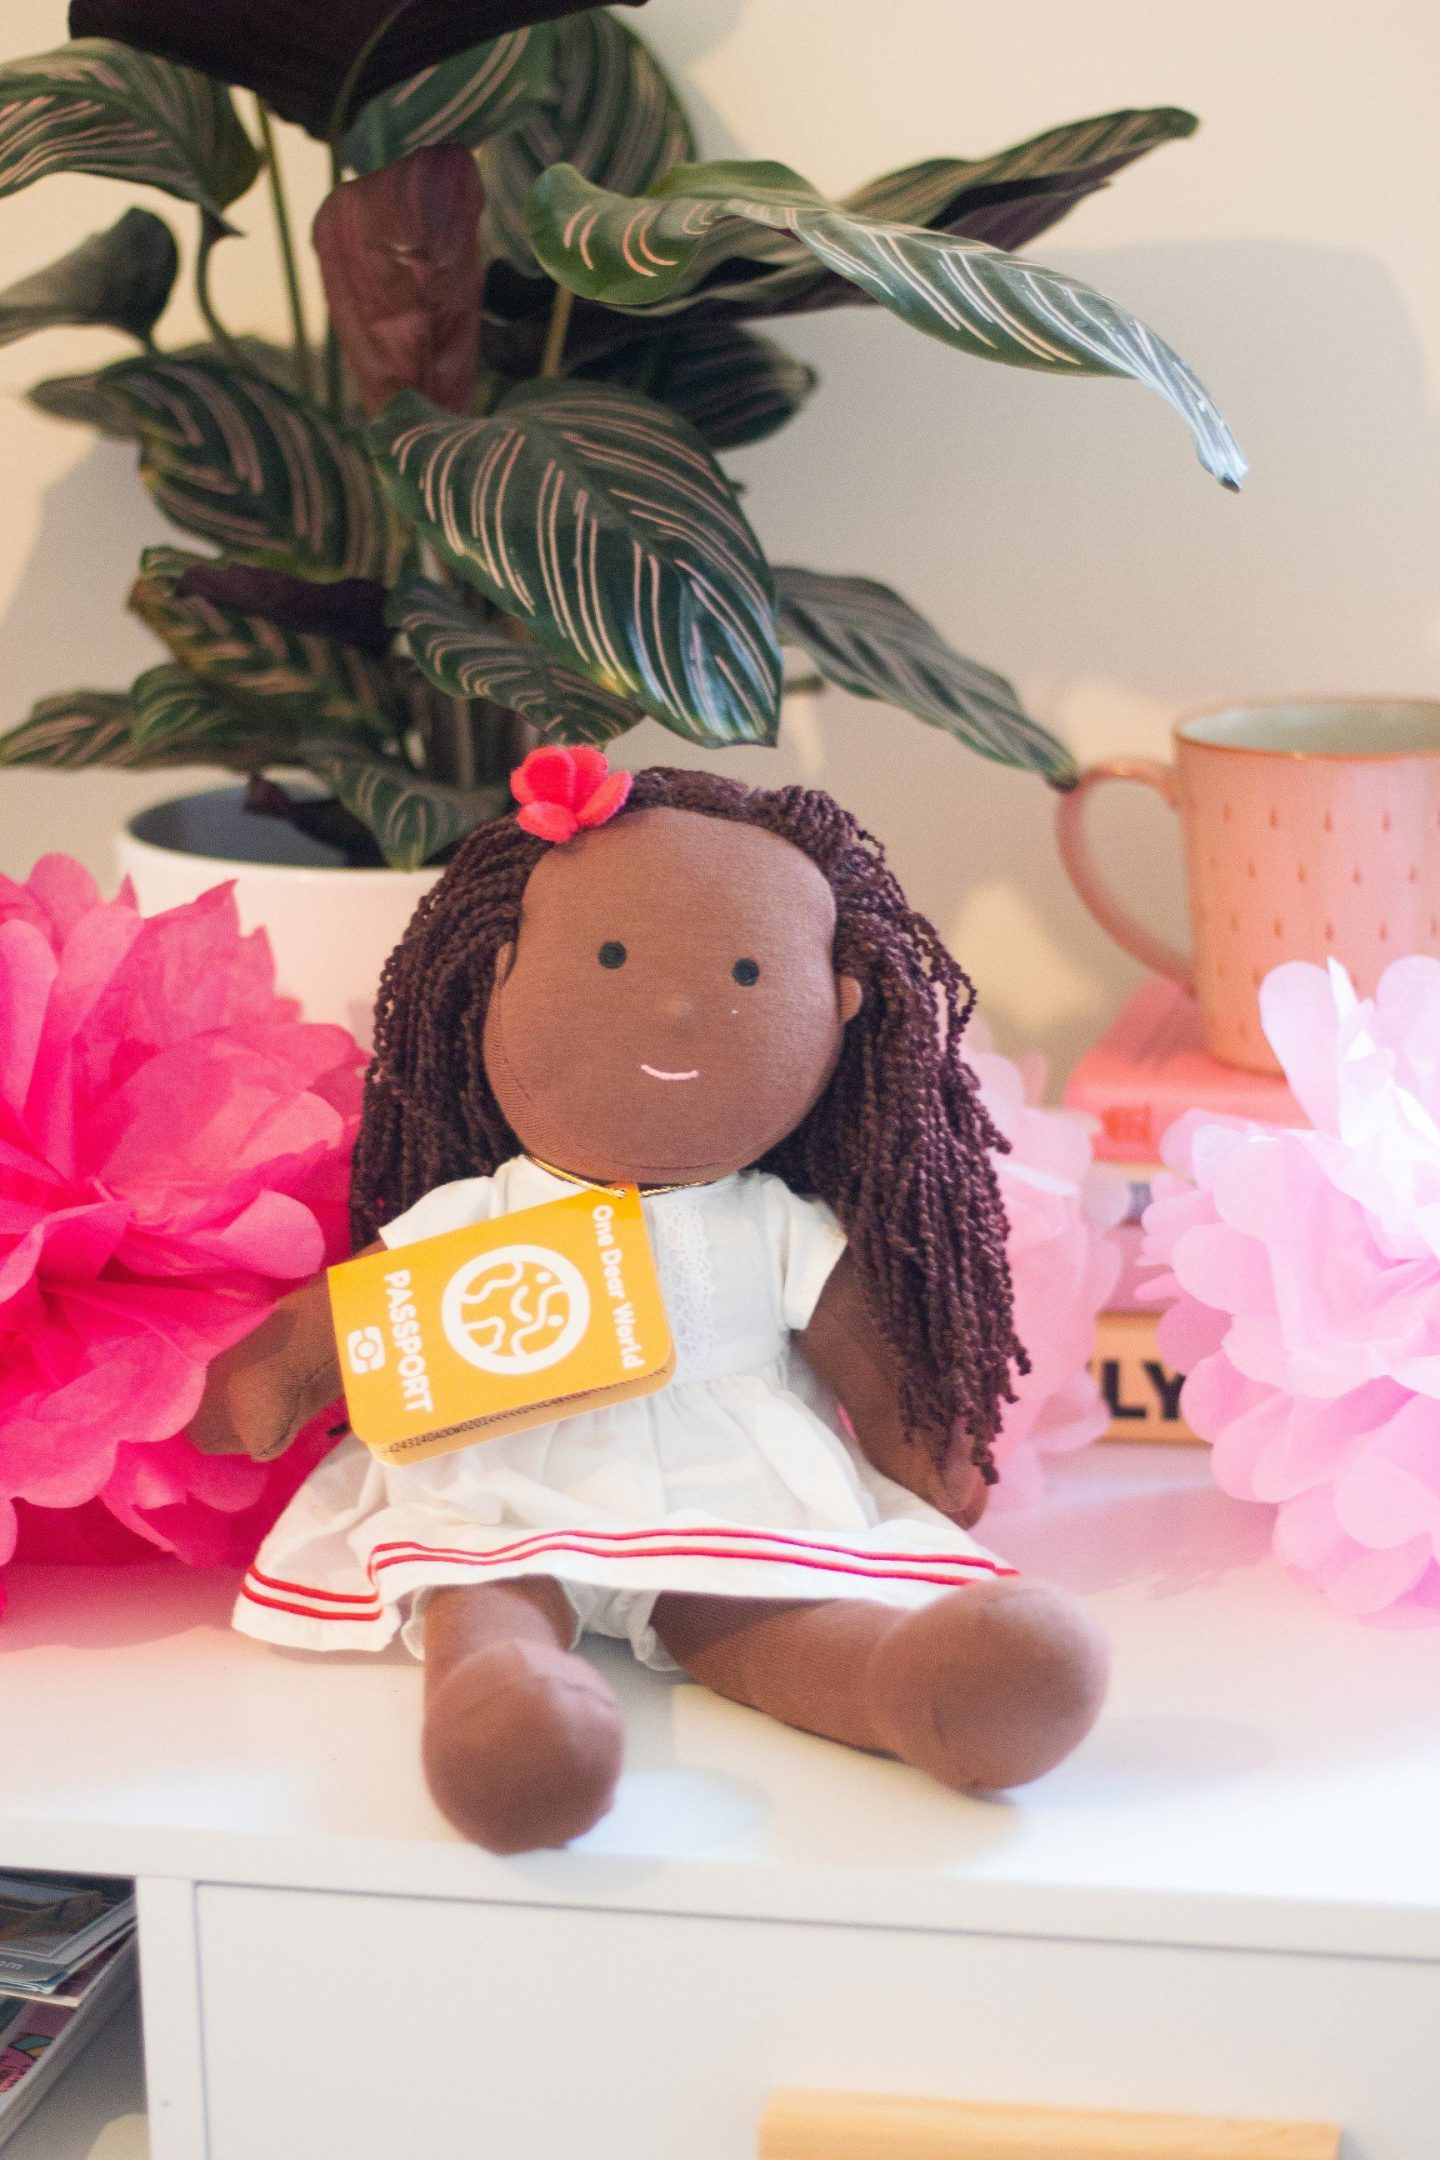 Rag doll with dark skin and dark hair and a little red flower in her hair.